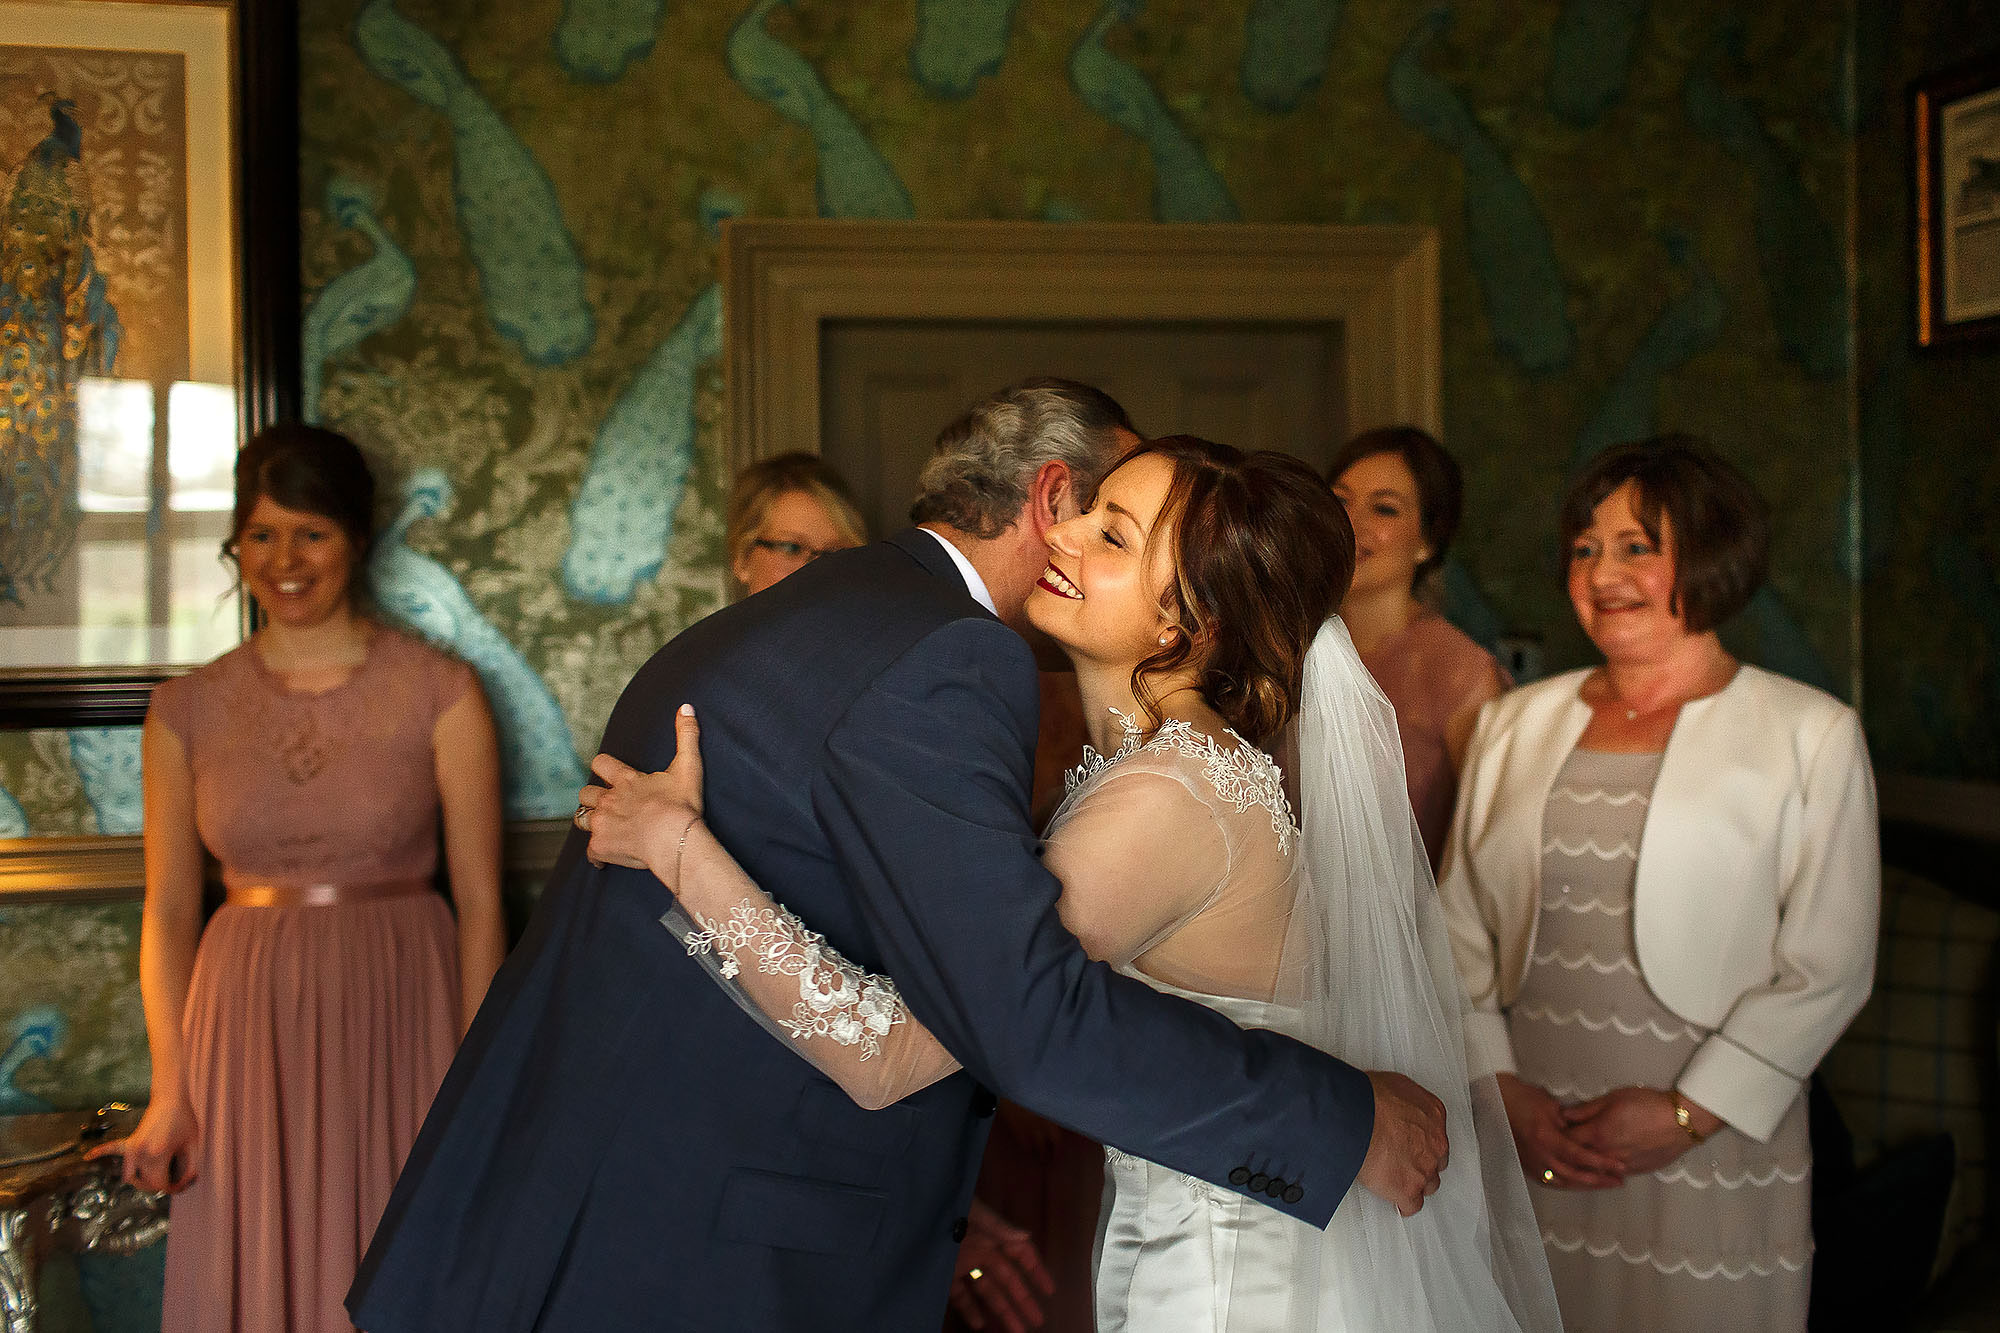 Father of the bride hugging the bride wearing long sleeved dress and veil as the bridesmaids wearing pink watch | Mitton Hall wedding photographs by Toni Darcy Photography